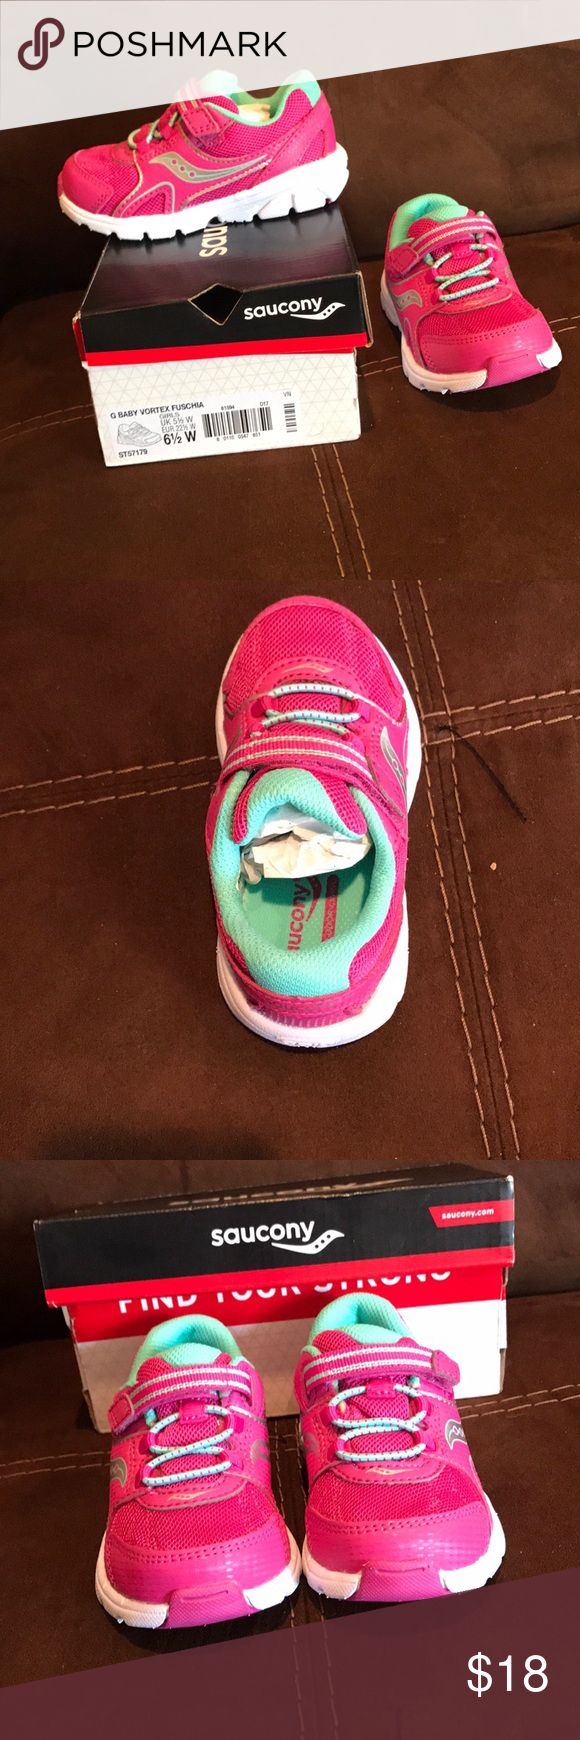 Saucony *NEW* Little Kids Sneaker - Size 6.5 W Baby Vortex Fuschia Saucony - Great sneakers for toddler girls. I bought 2 sizes and never returned the one that didn't fit. They are light weight and great sneakers!  Size- 6.5 Little Kids WIDE Saucony Shoes Sneakers